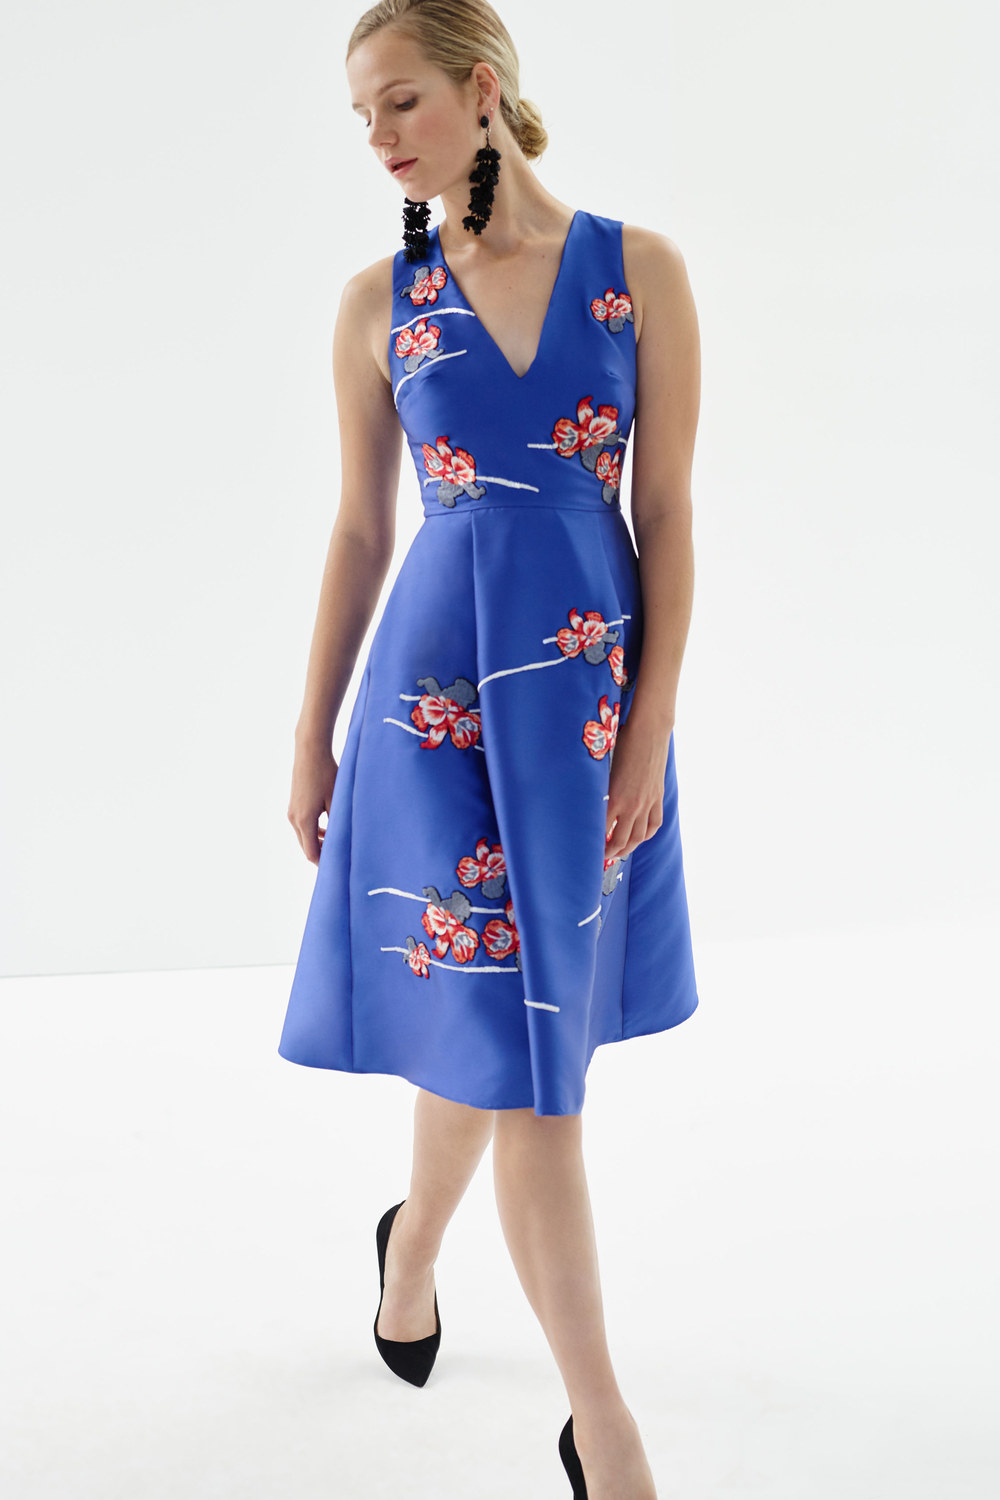 sachin-babi-pre-fall-2016-lookbook-14.jpg